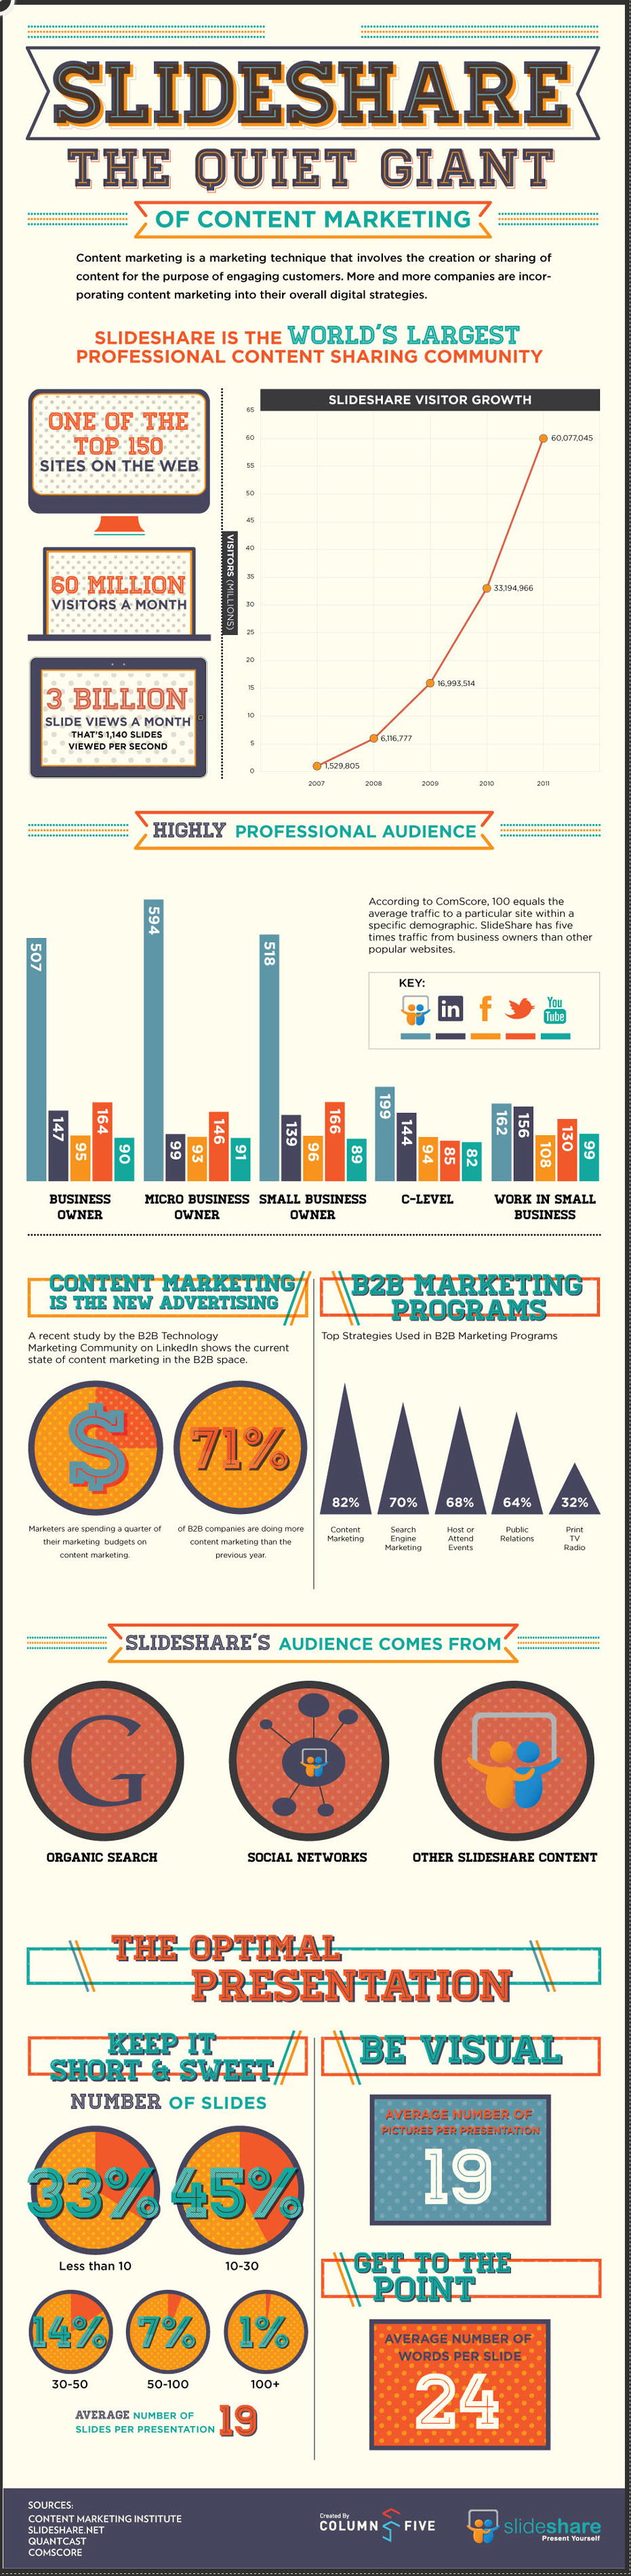 Sliideshare infographic the quiet giant of social media networks